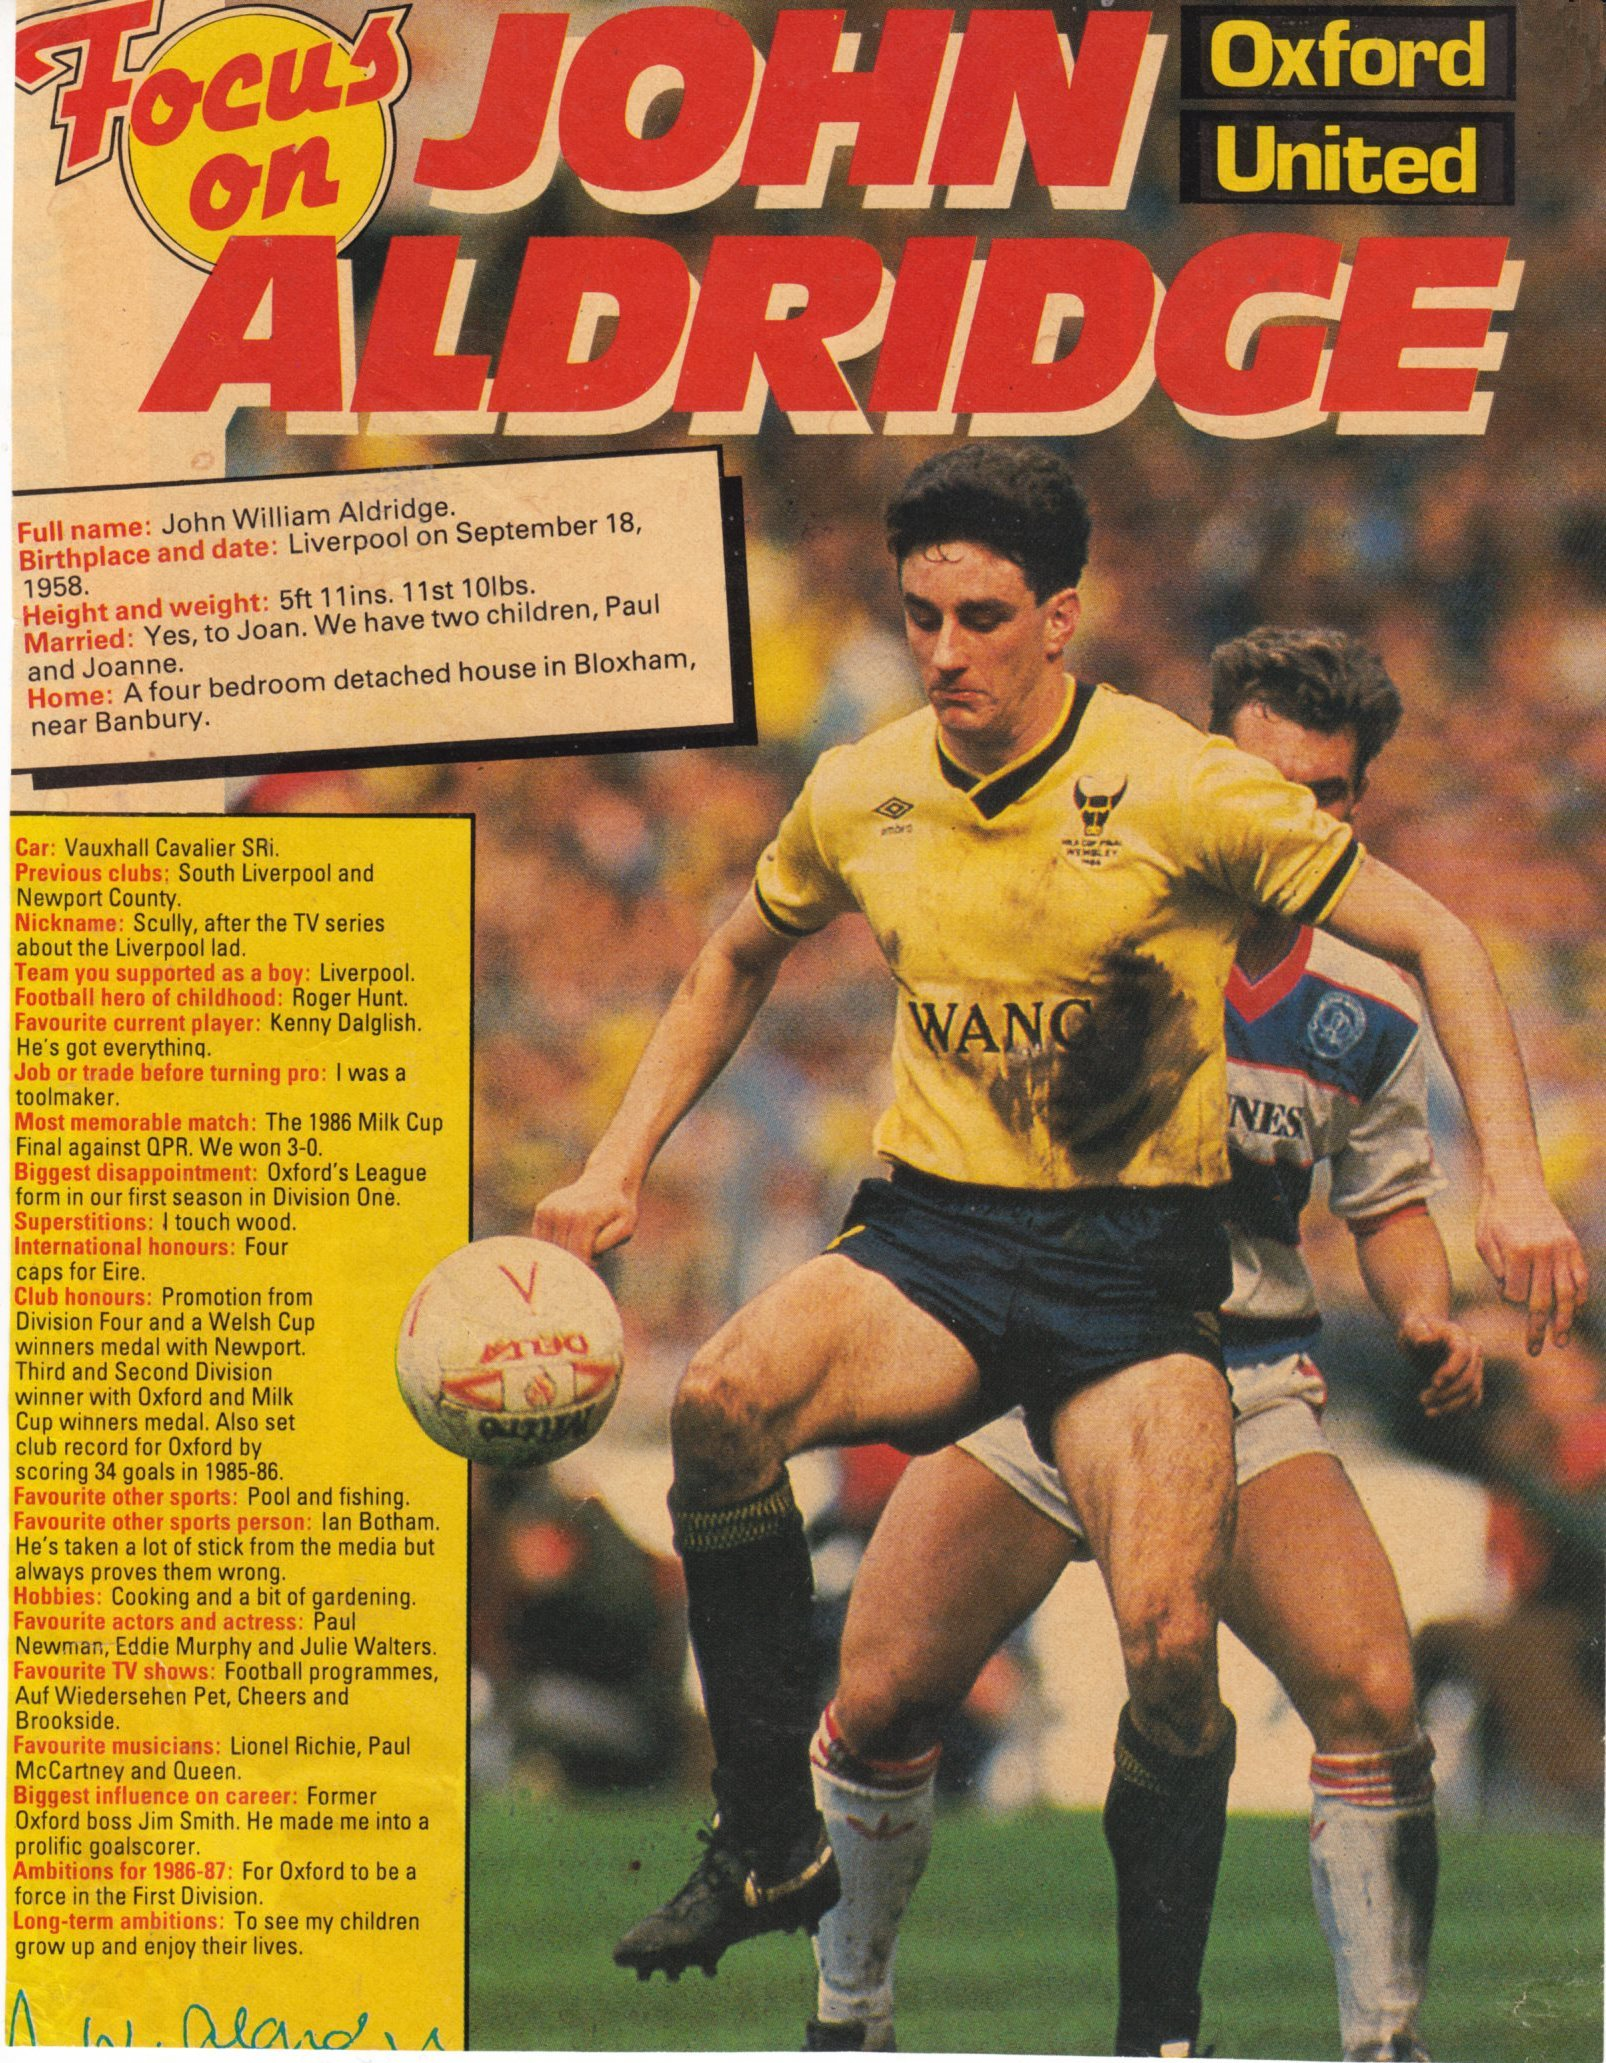 Another Focus on Oxford's John Aldridge